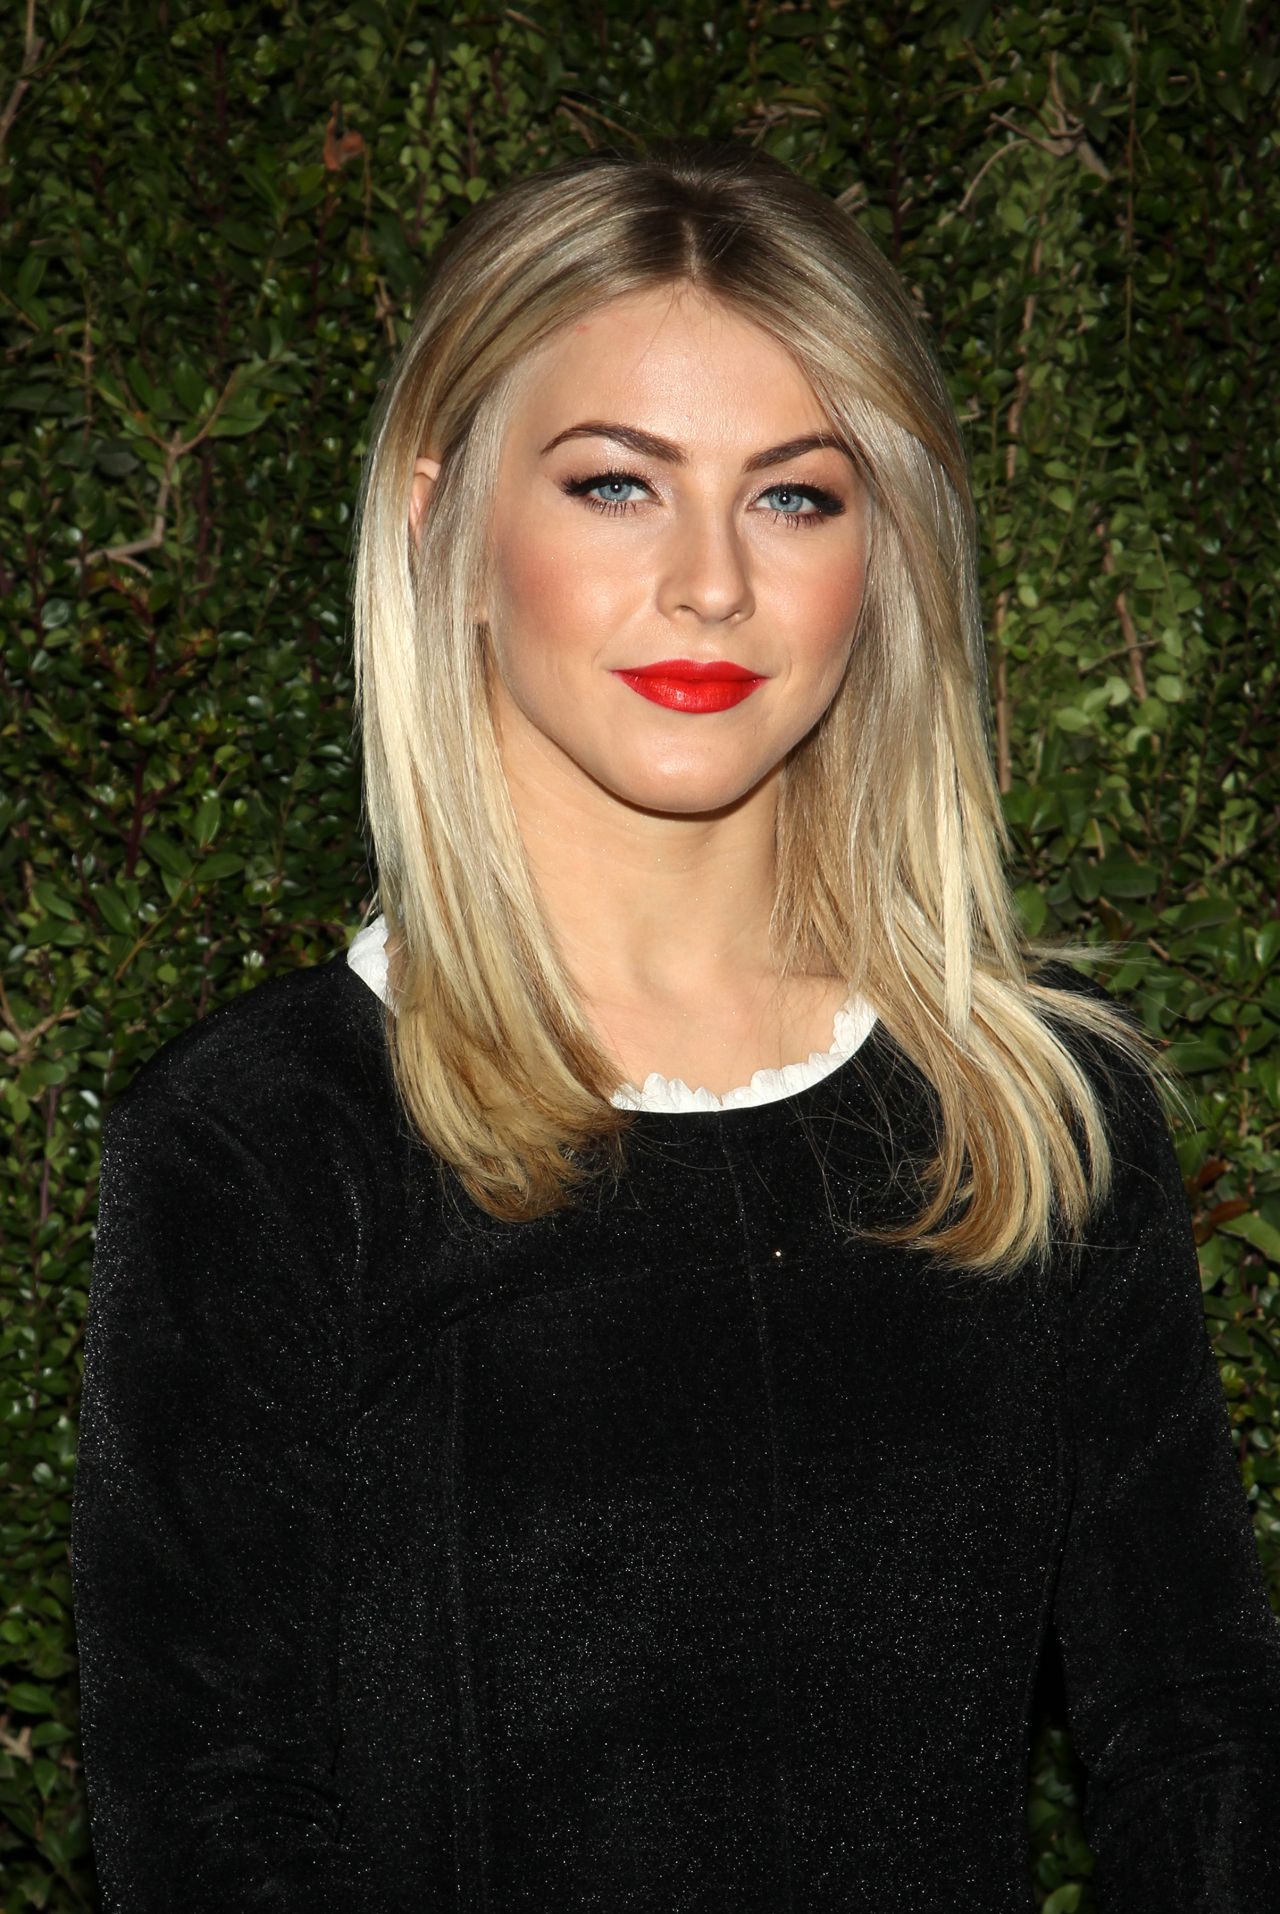 Julianne Hough at Release of Drew Barrymore